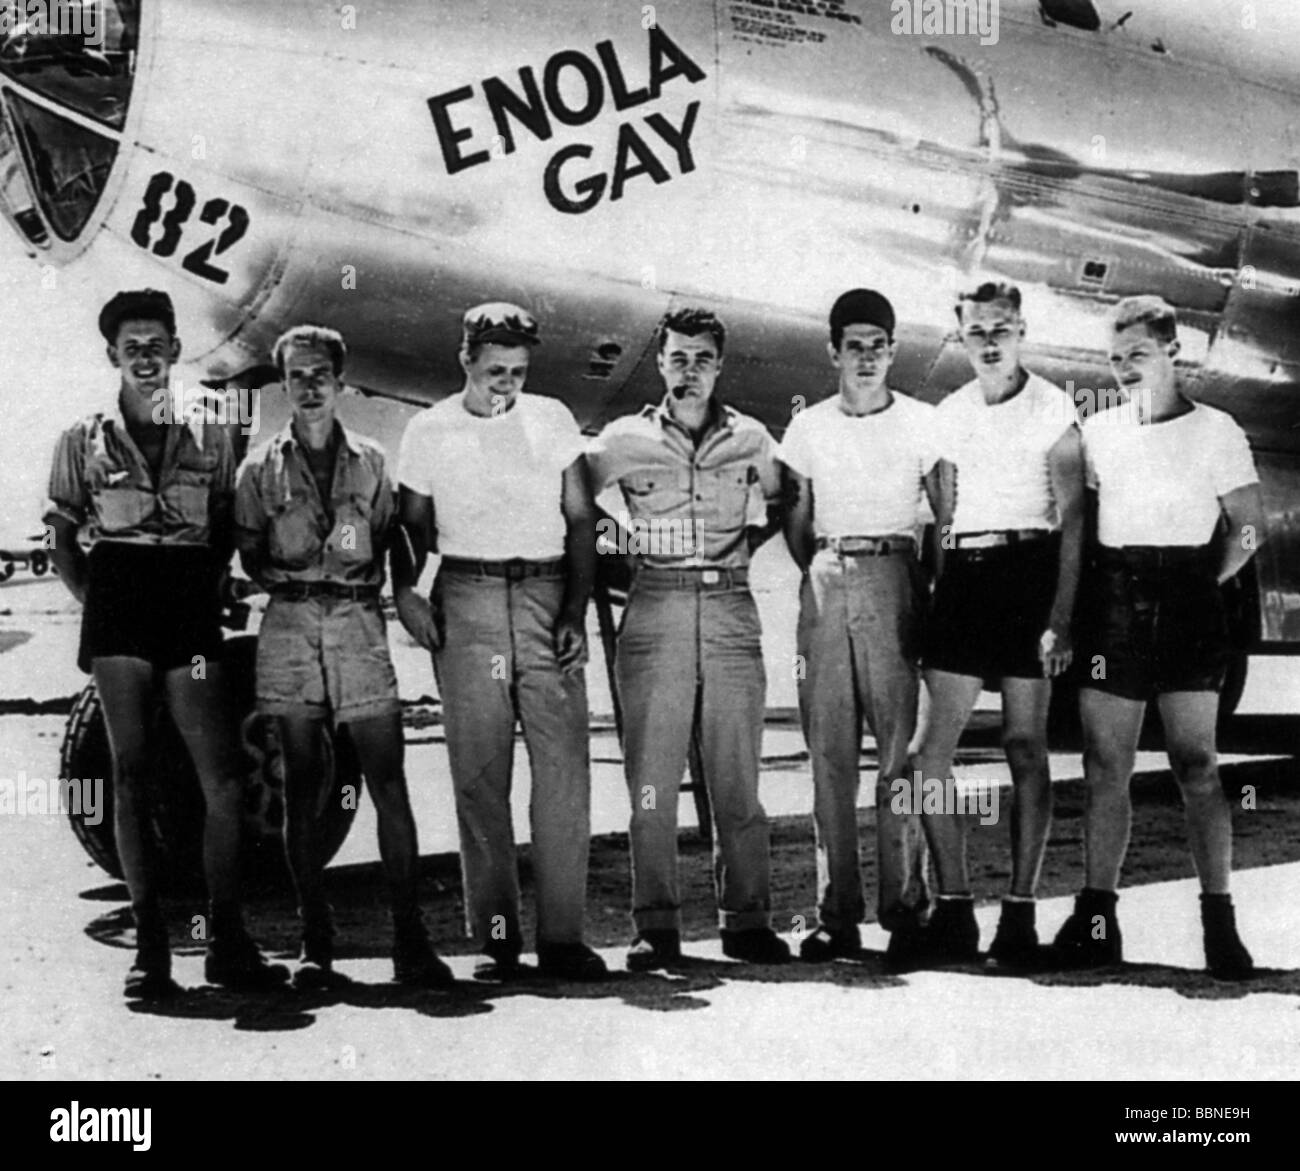 """events, Second World War / WW II, Japan, Atomic bombing of Hiroshima, 6.8.1945, crew of the bomber """"Enola Gay, that Stock Photo"""